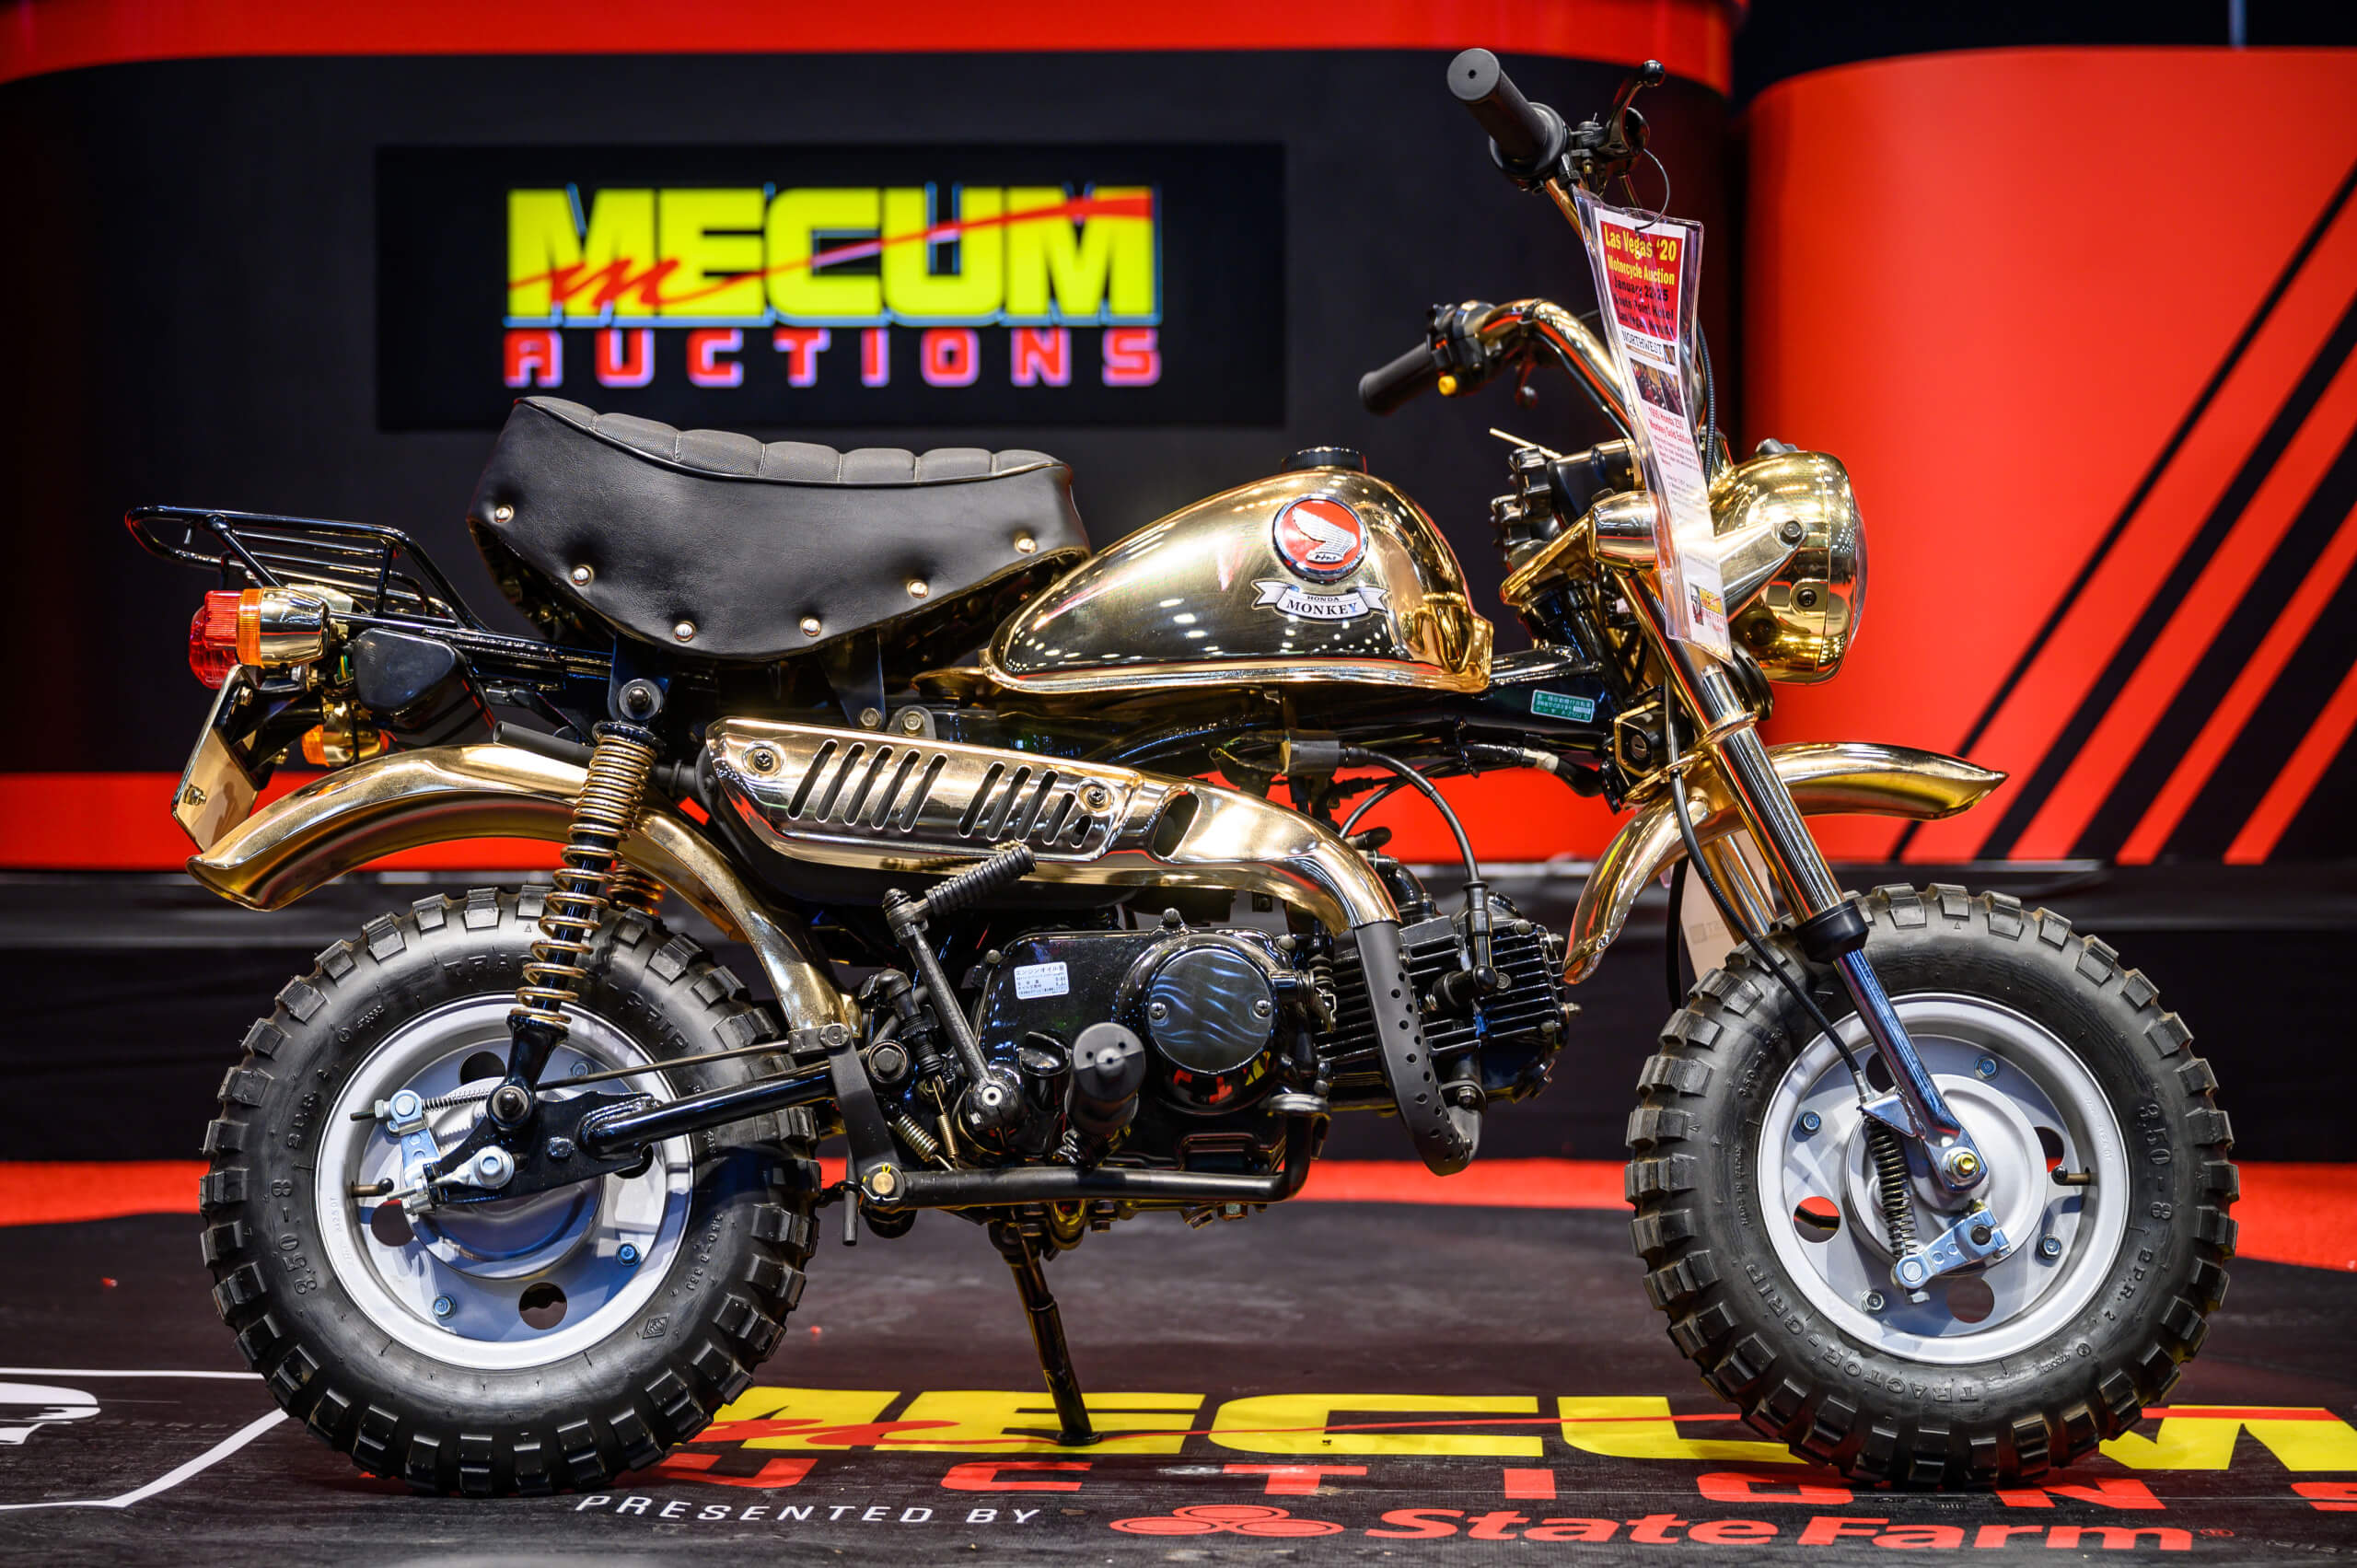 Honda Monkey motorcycles were all over the 2020 Mecum Las Vegas motorcycle auction.